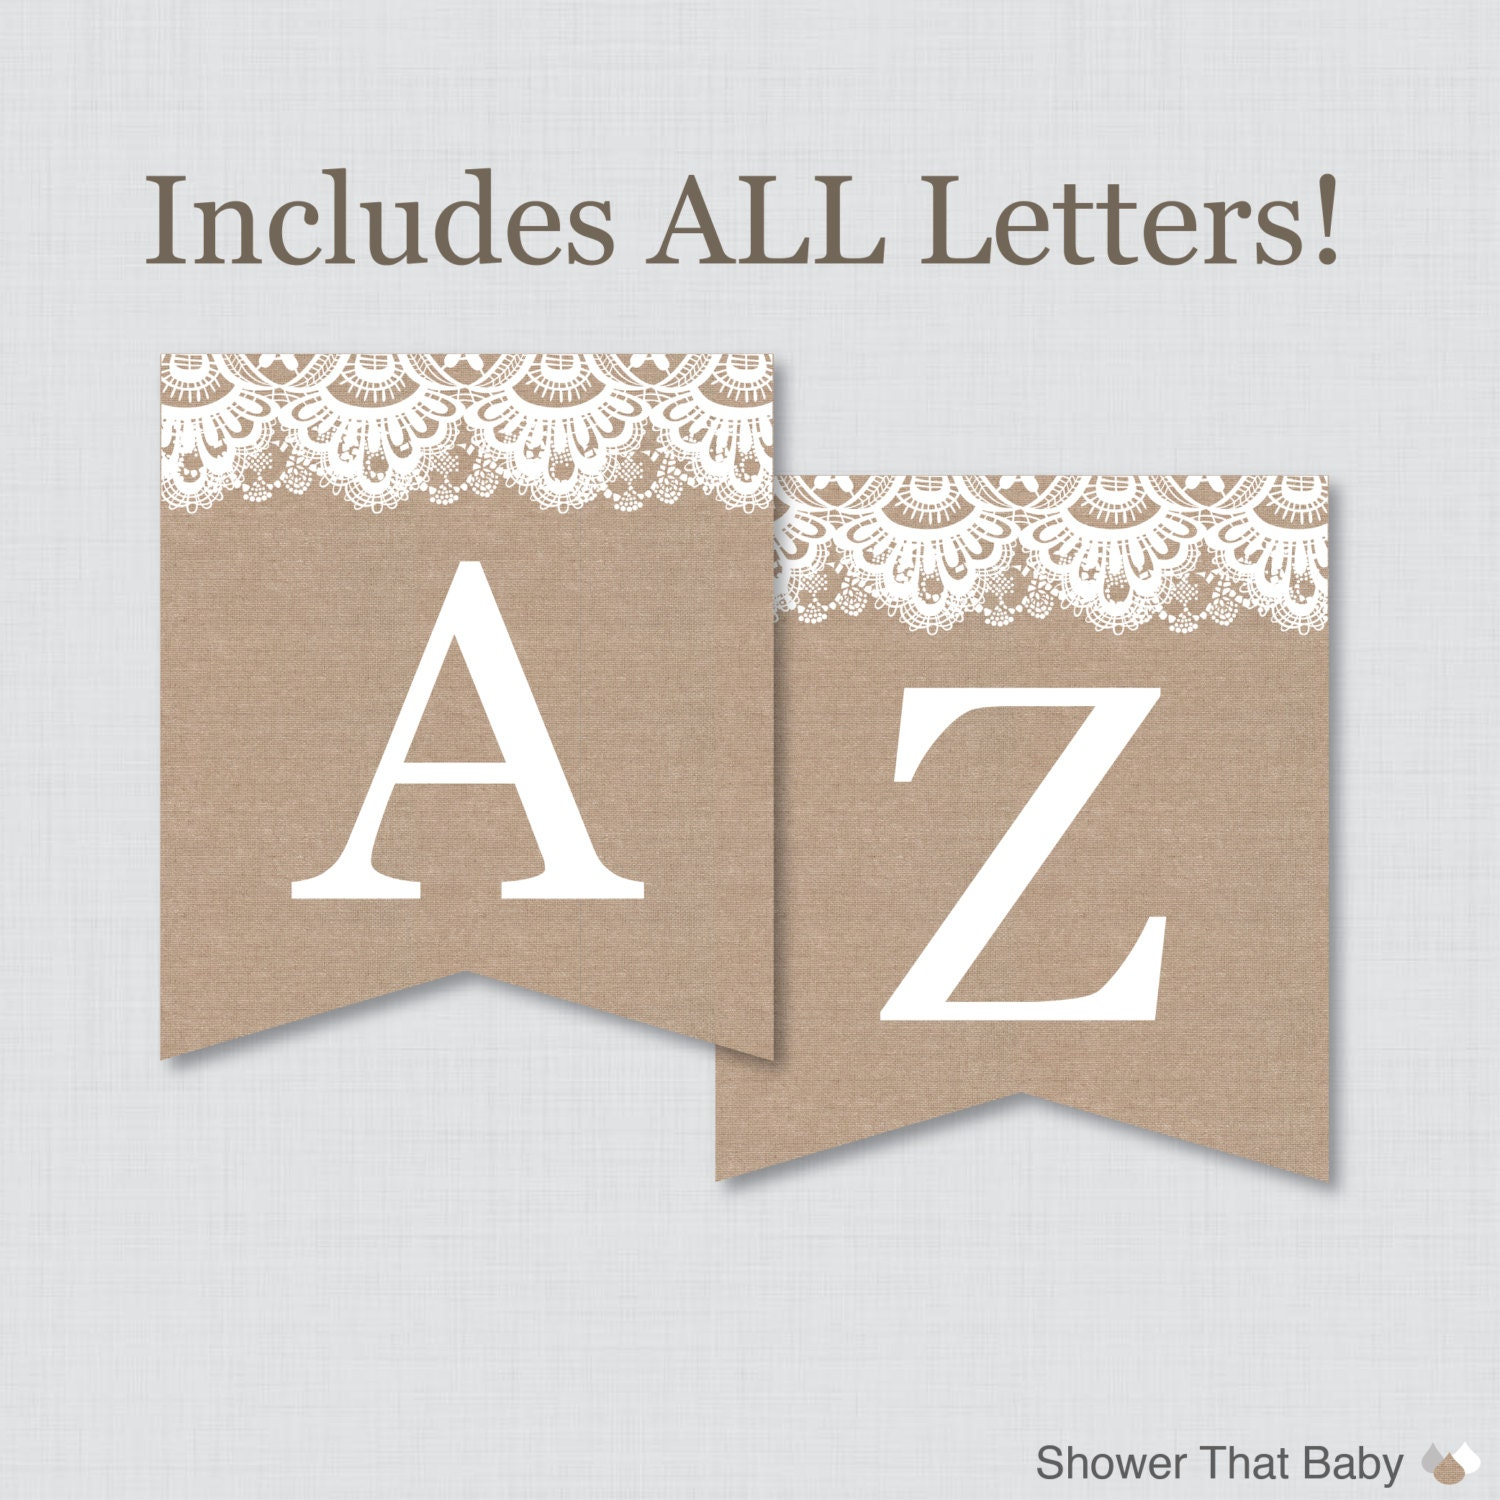 Letter From Baby To Baby Shower Guests: Burlap And Lace Banner With ALL Letters Printable Instant